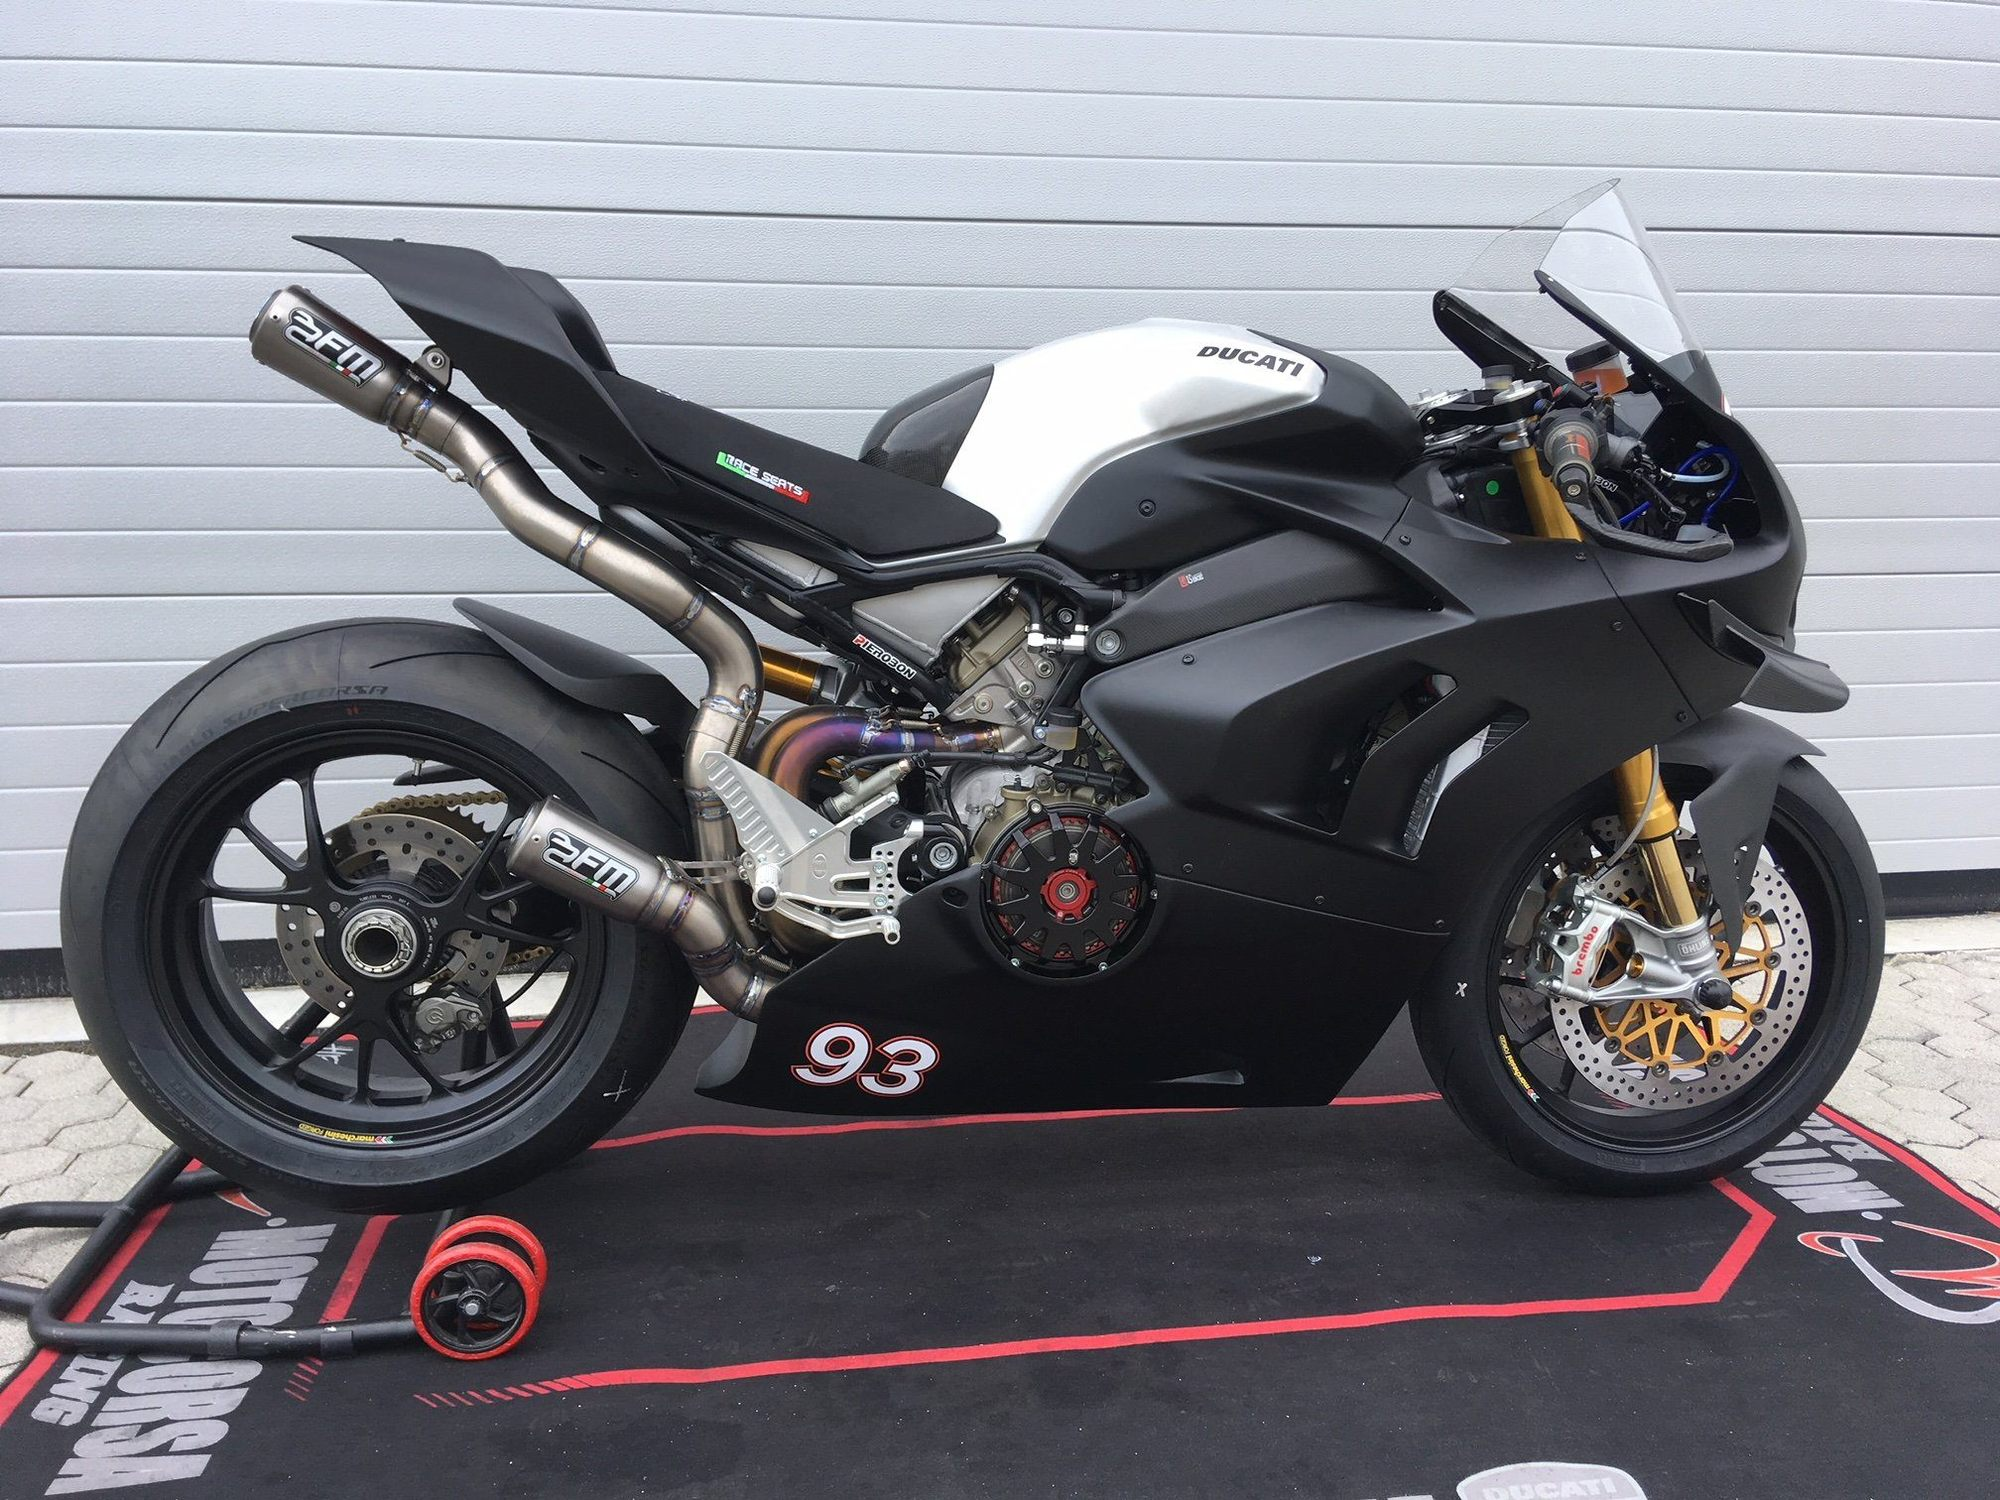 FM Projects Full Titanium Exhaust for the Ducati Panigale V4 R